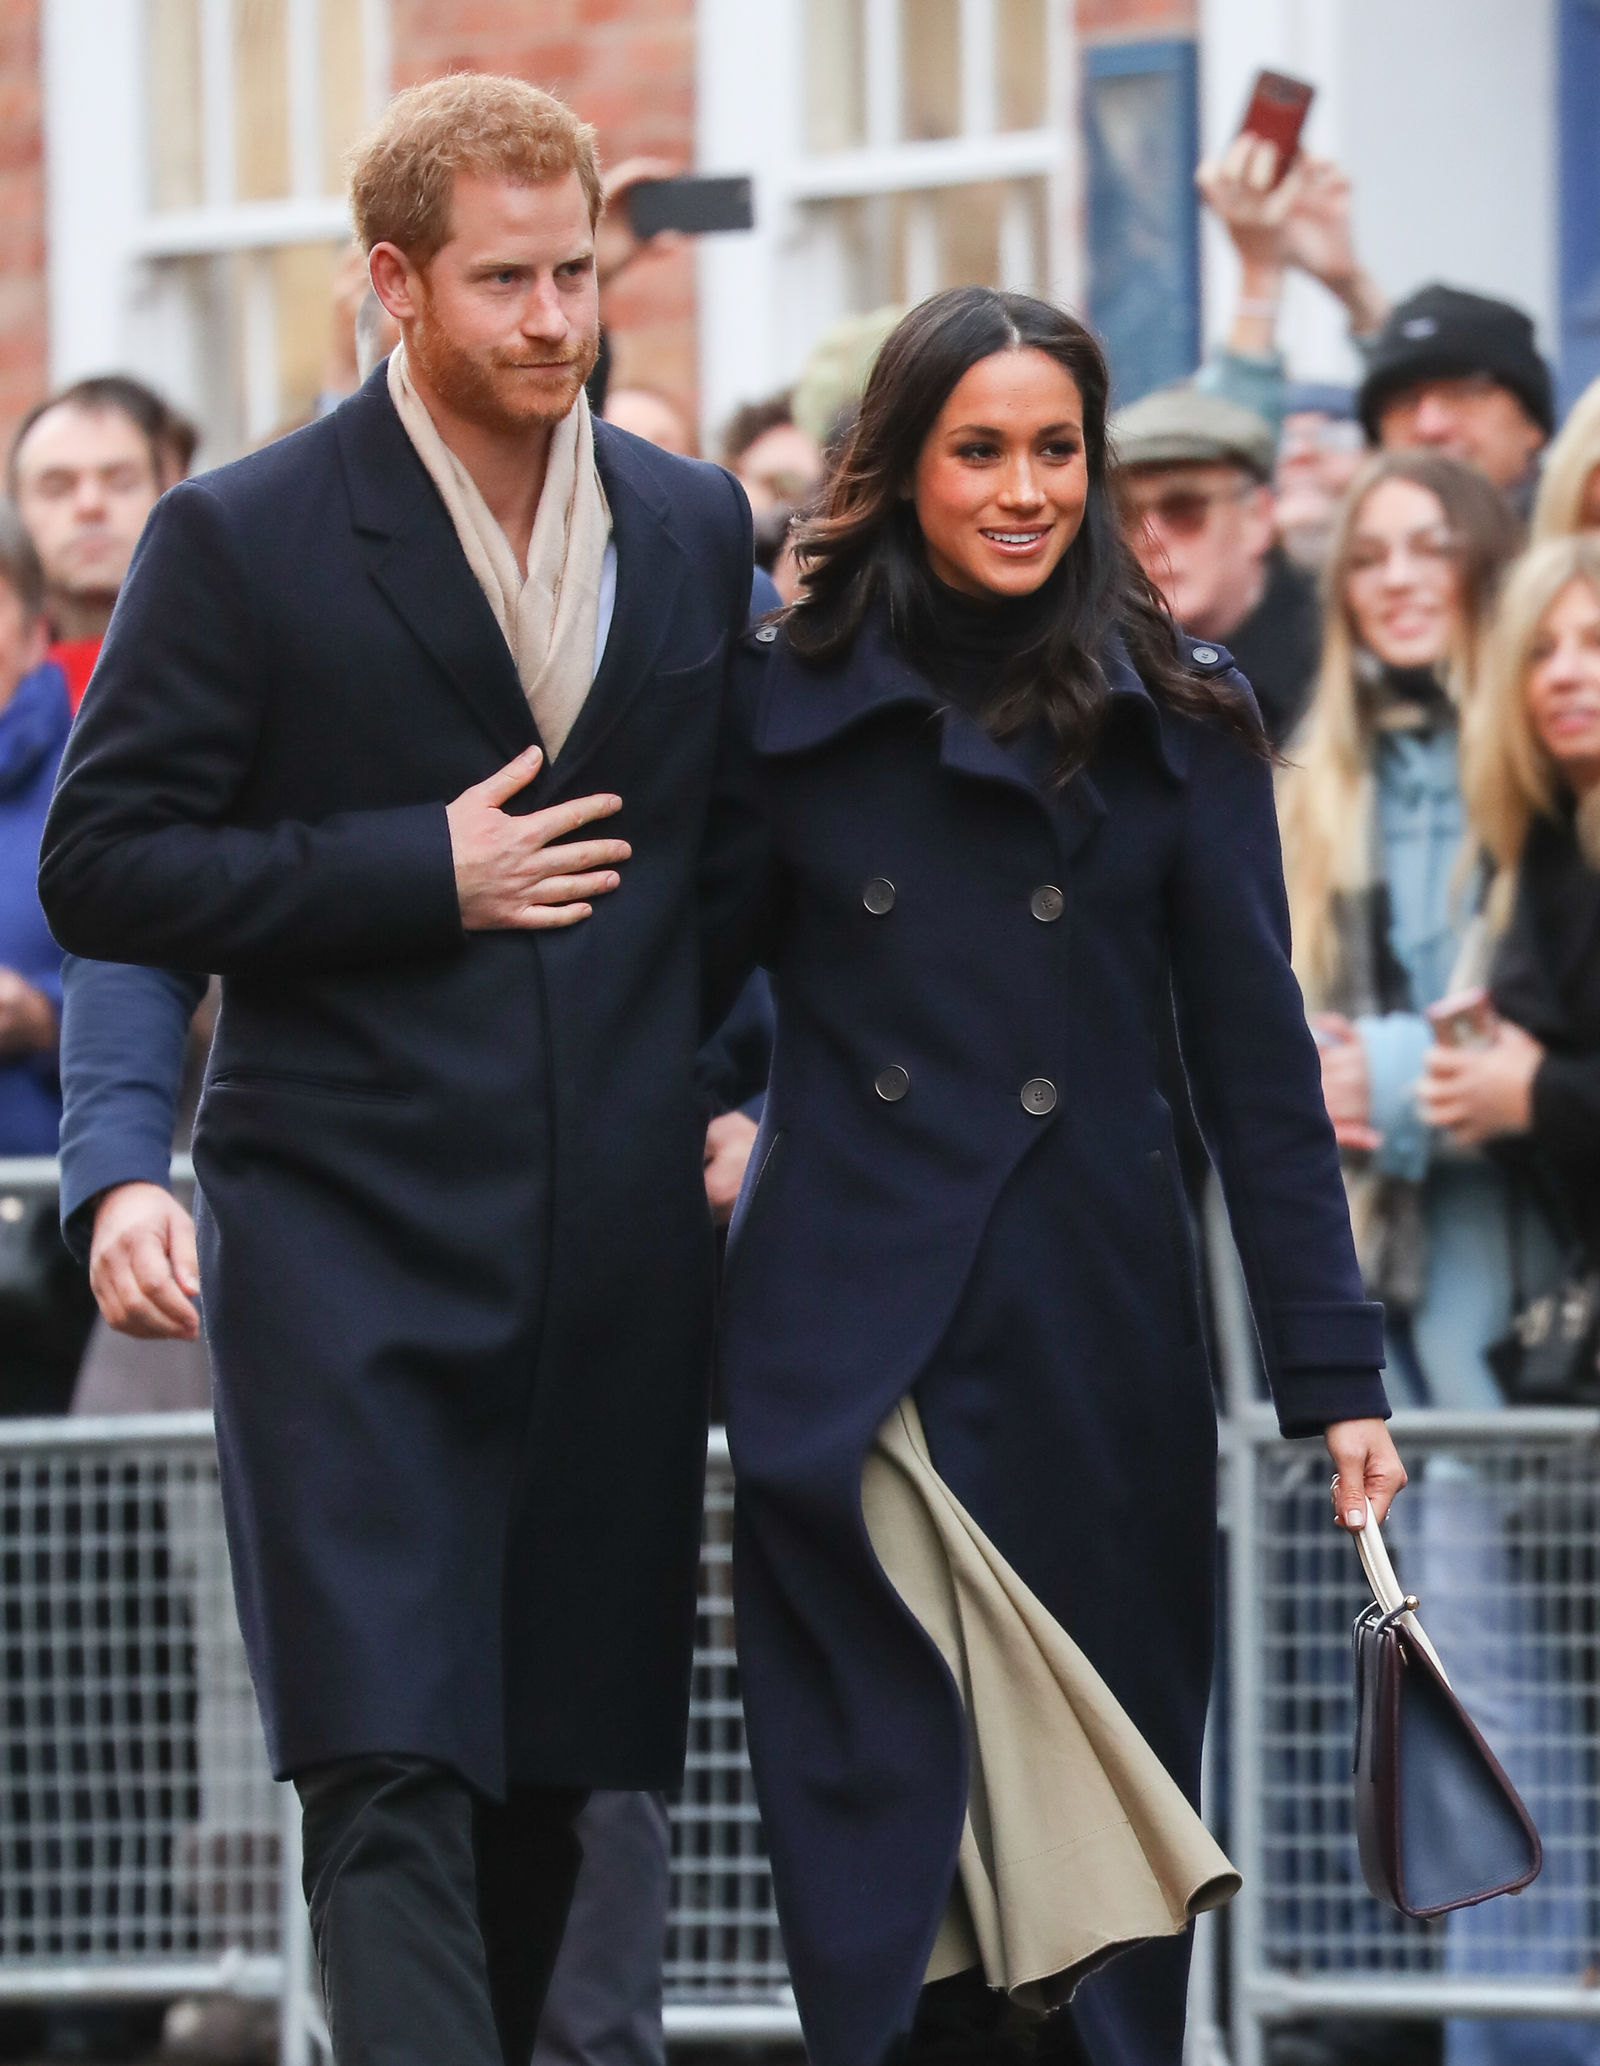 Prince Harry and Meghan Markle attend the Terrence Higgins Trust charity fair at the Nottingham Contemporary Centre                Featuring: Prince Harry, Meghan Markle        Where: Nottingham, United Kingdom        When: 01 Dec 2017        Credit: John Rainford/WENN.com